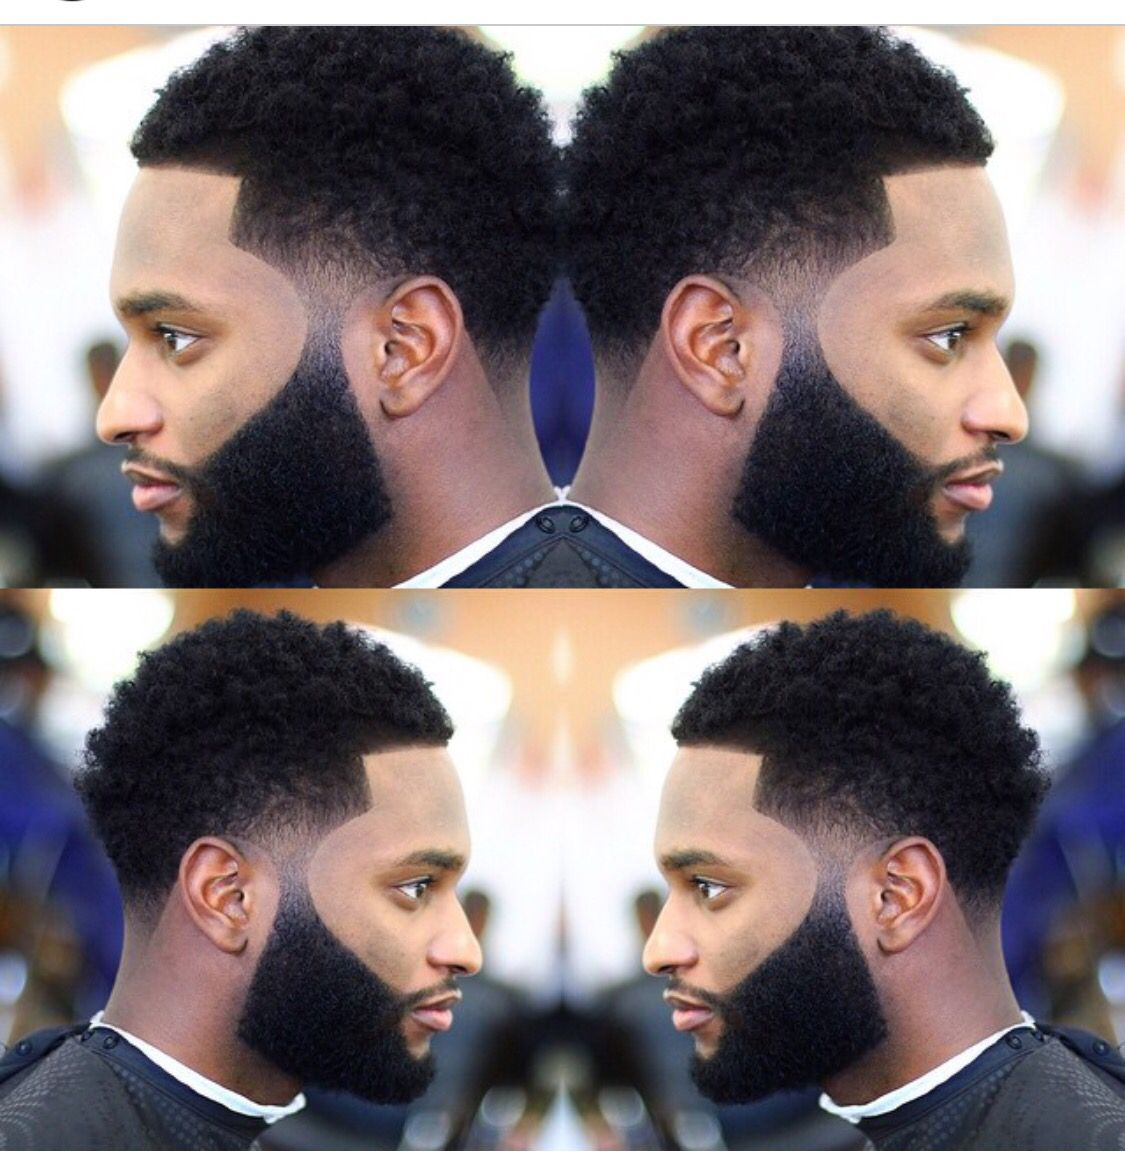 Taper Fade Ethnic Or Waves Cut  Mohawk Burst Fade Pinterest - Afro taper haircut